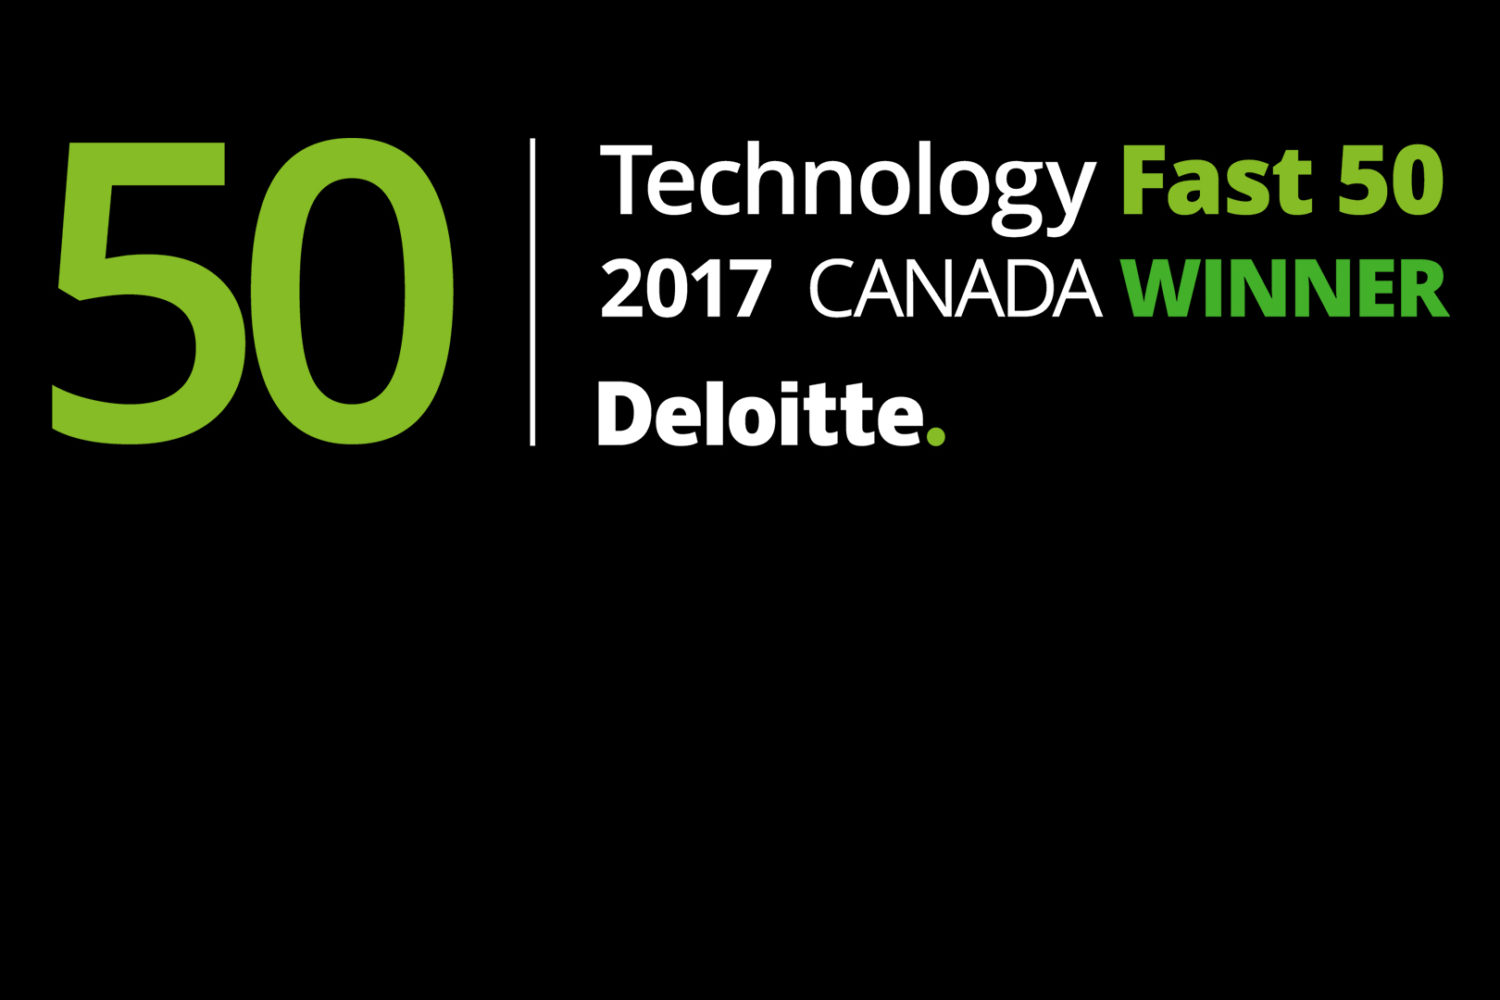 Innovative tech in Canada: 500px is named a 'Deloitte Technology Fast 50' winner